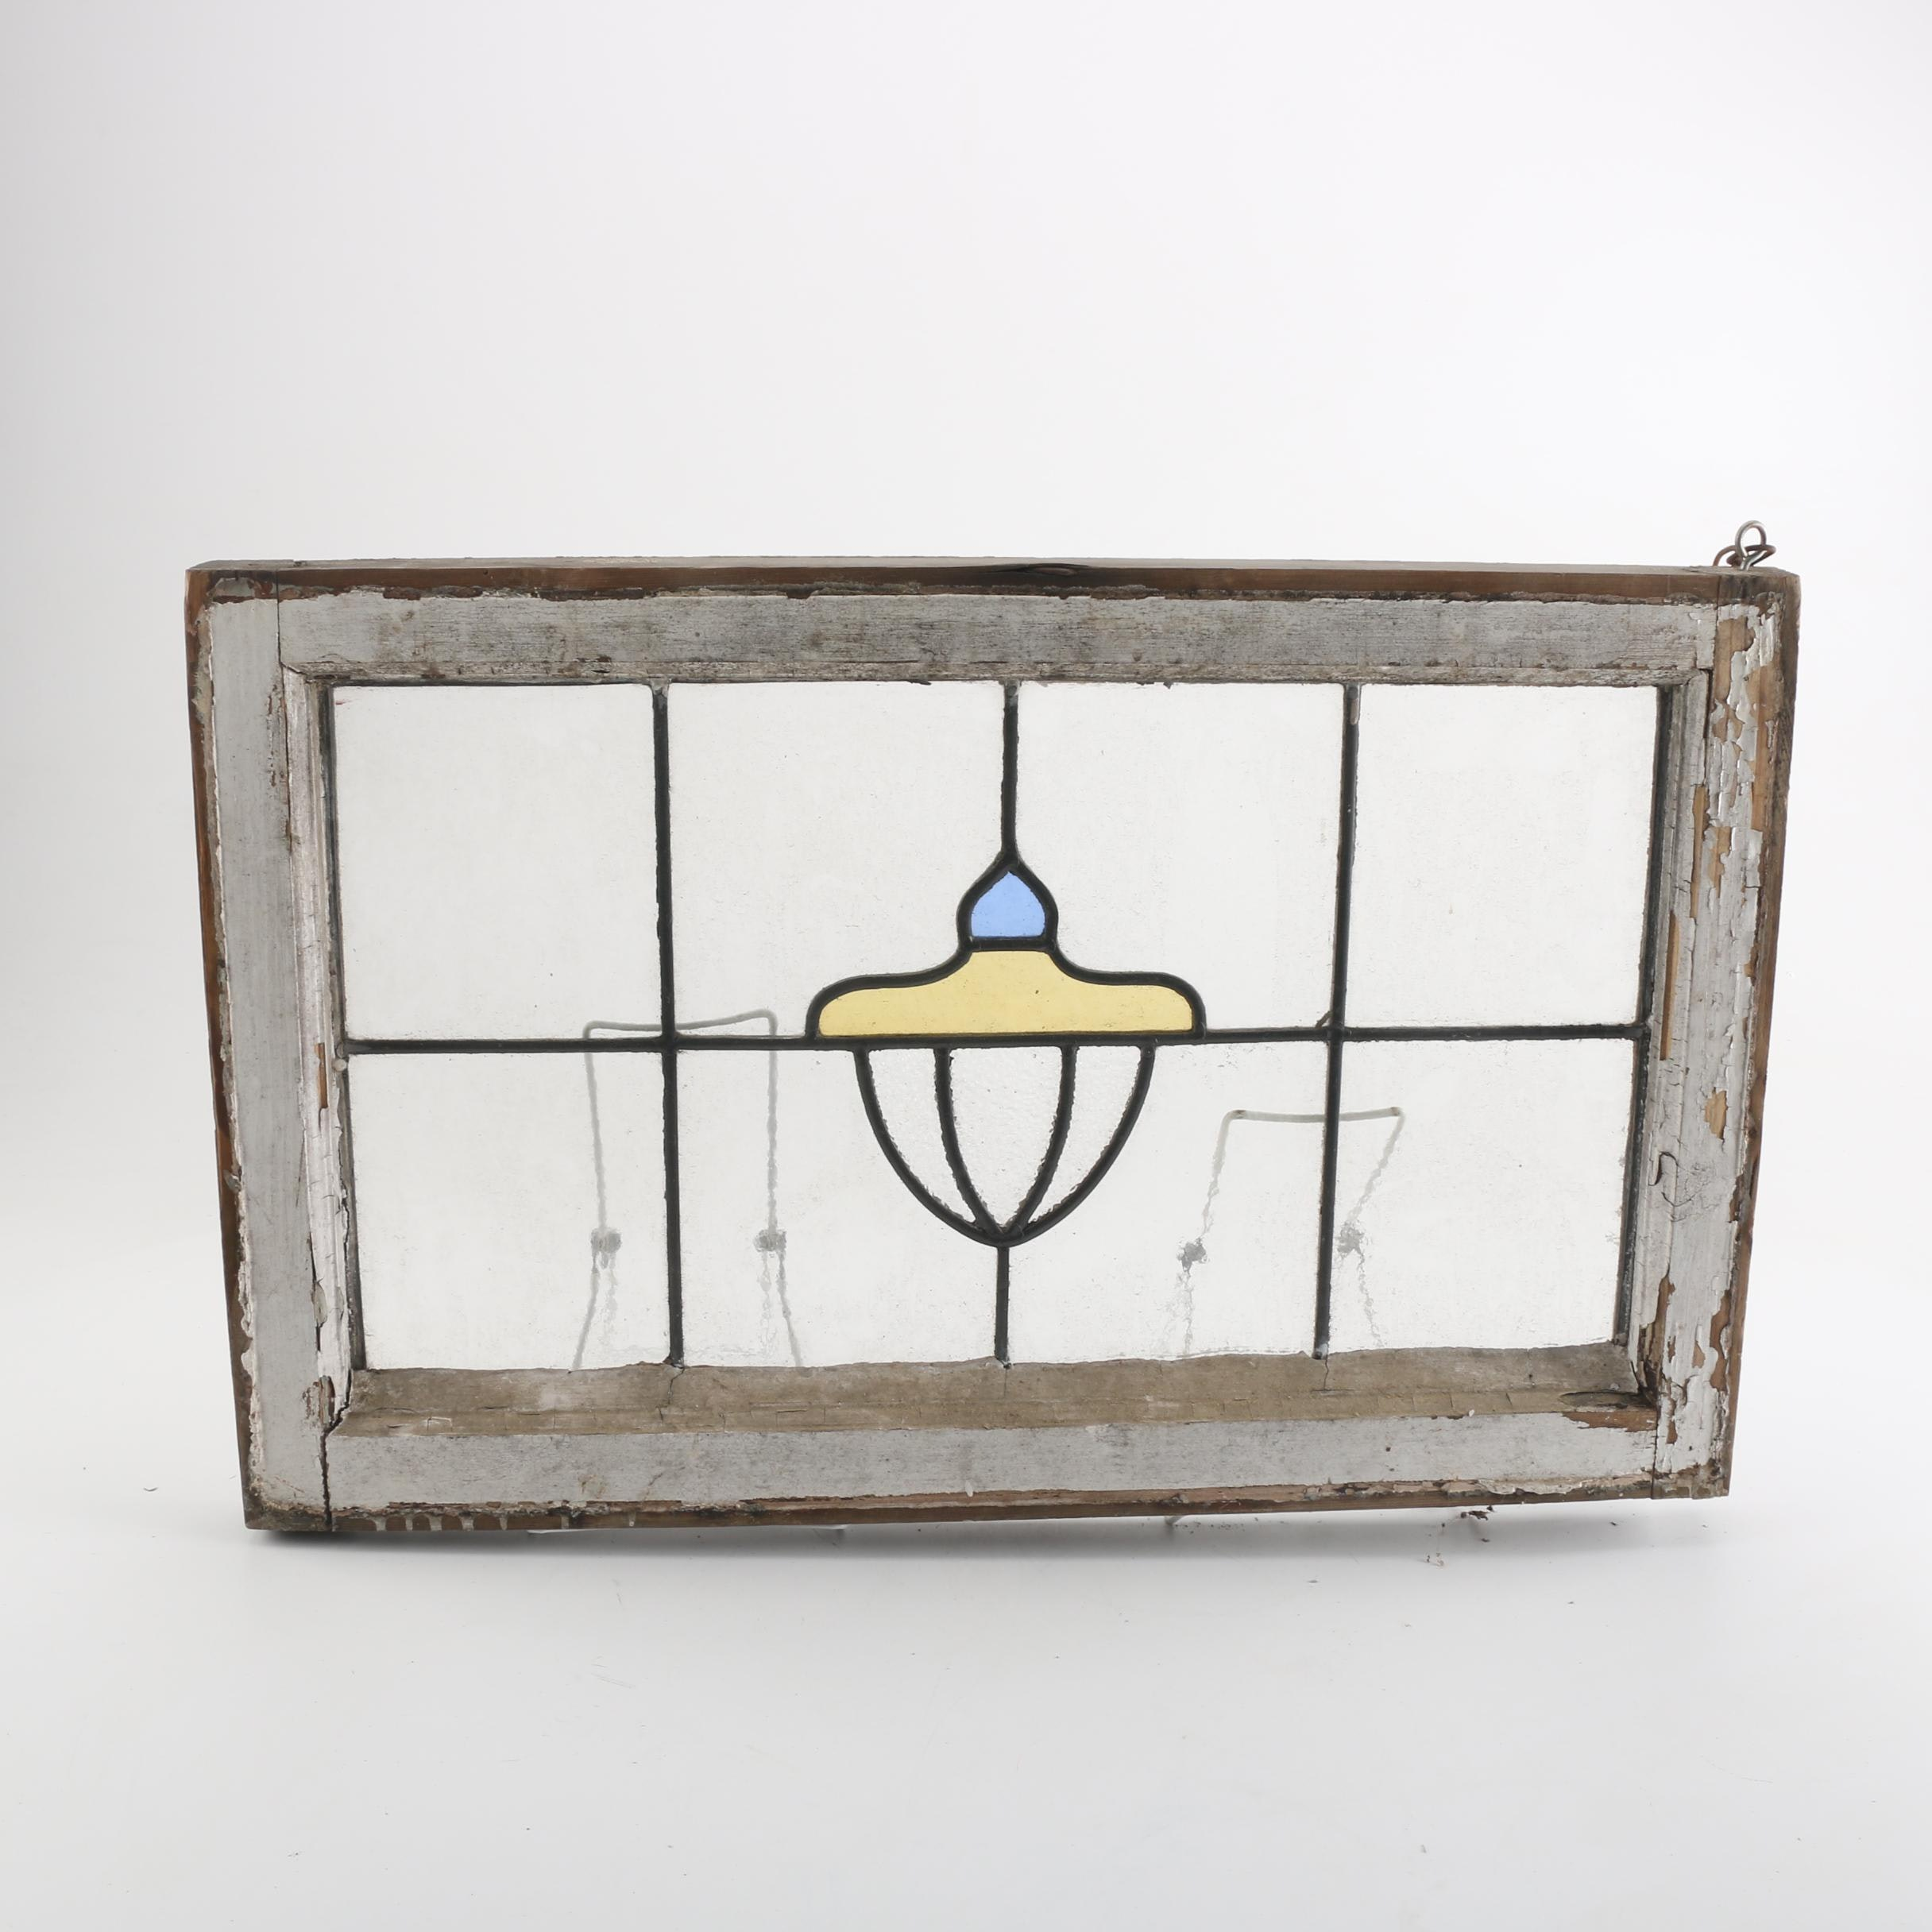 Wood Framed Stained Glass Window